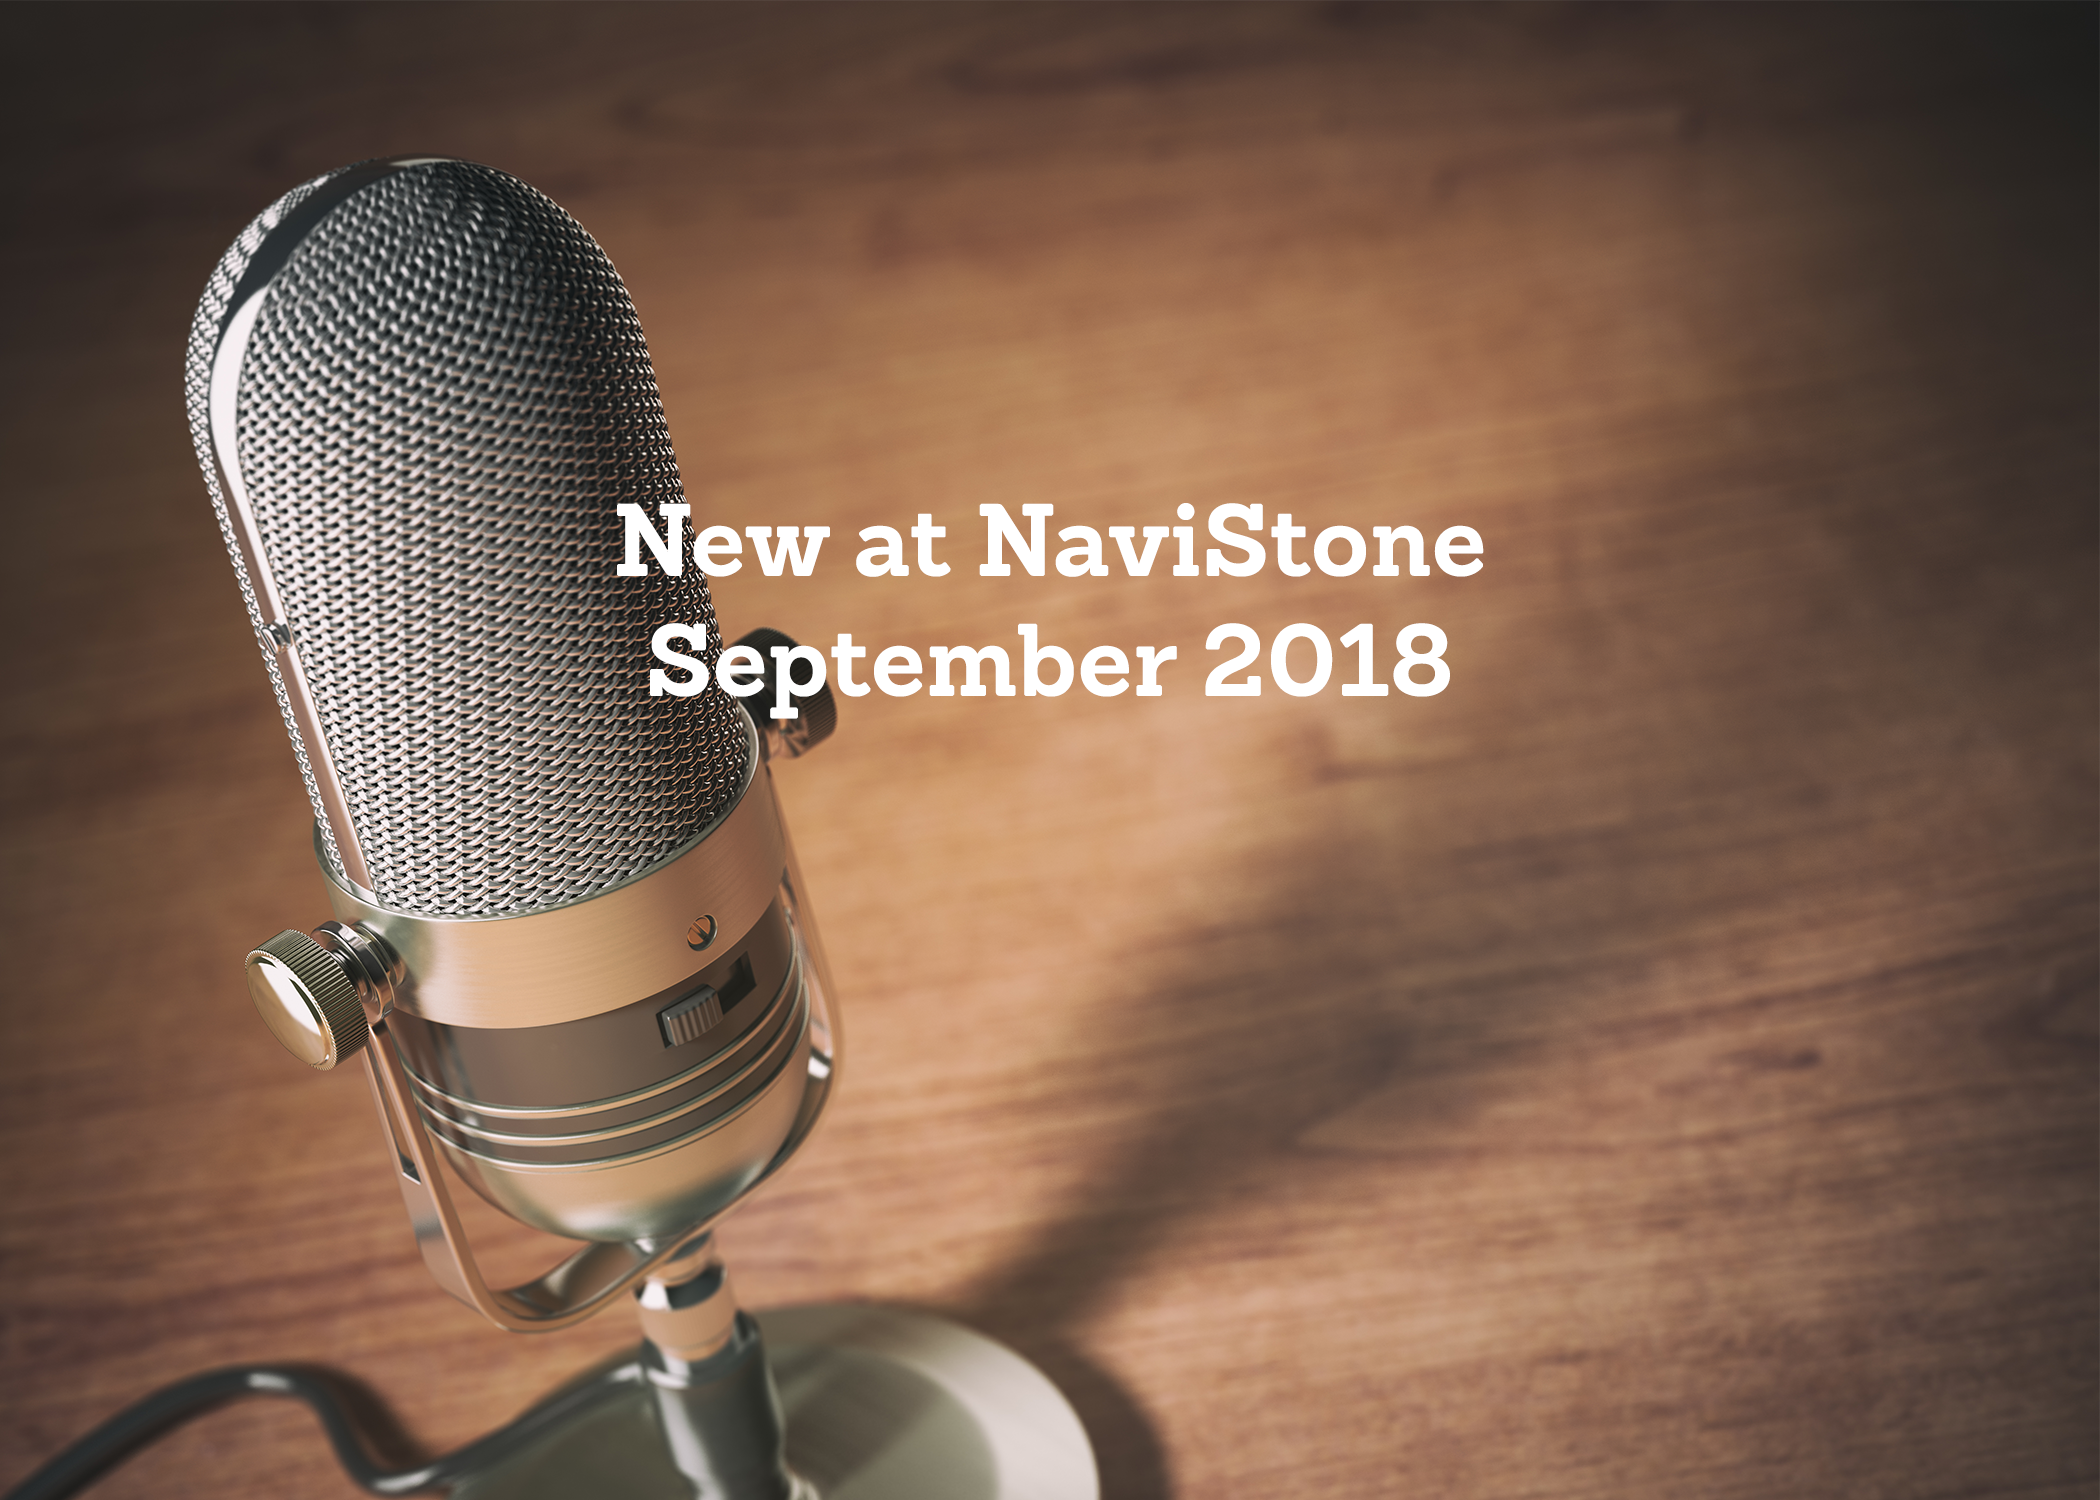 New at NaviStone September